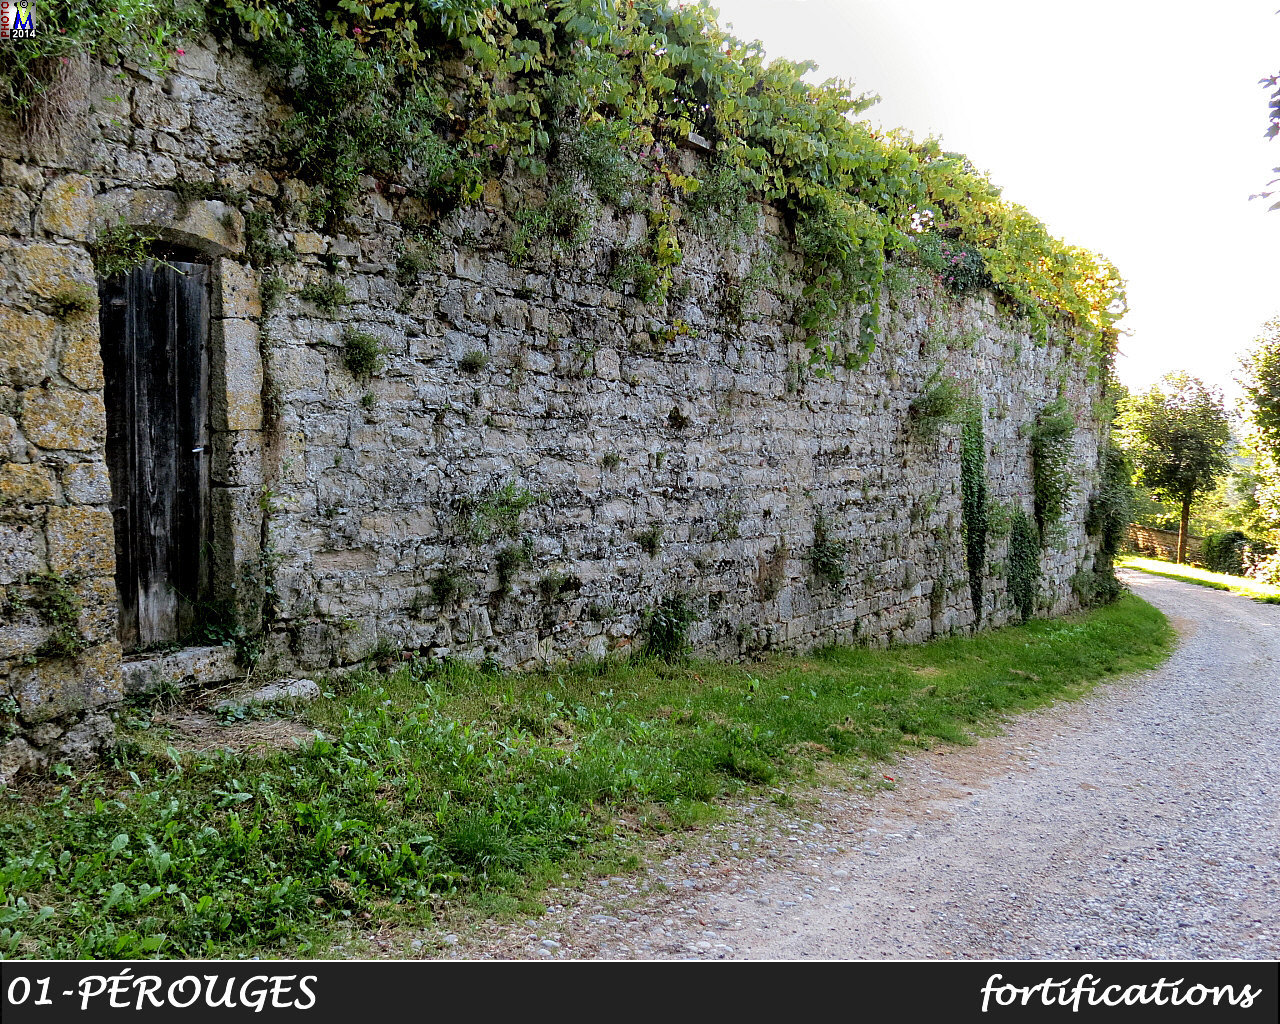 01PEROUGES_fortifications_102.jpg